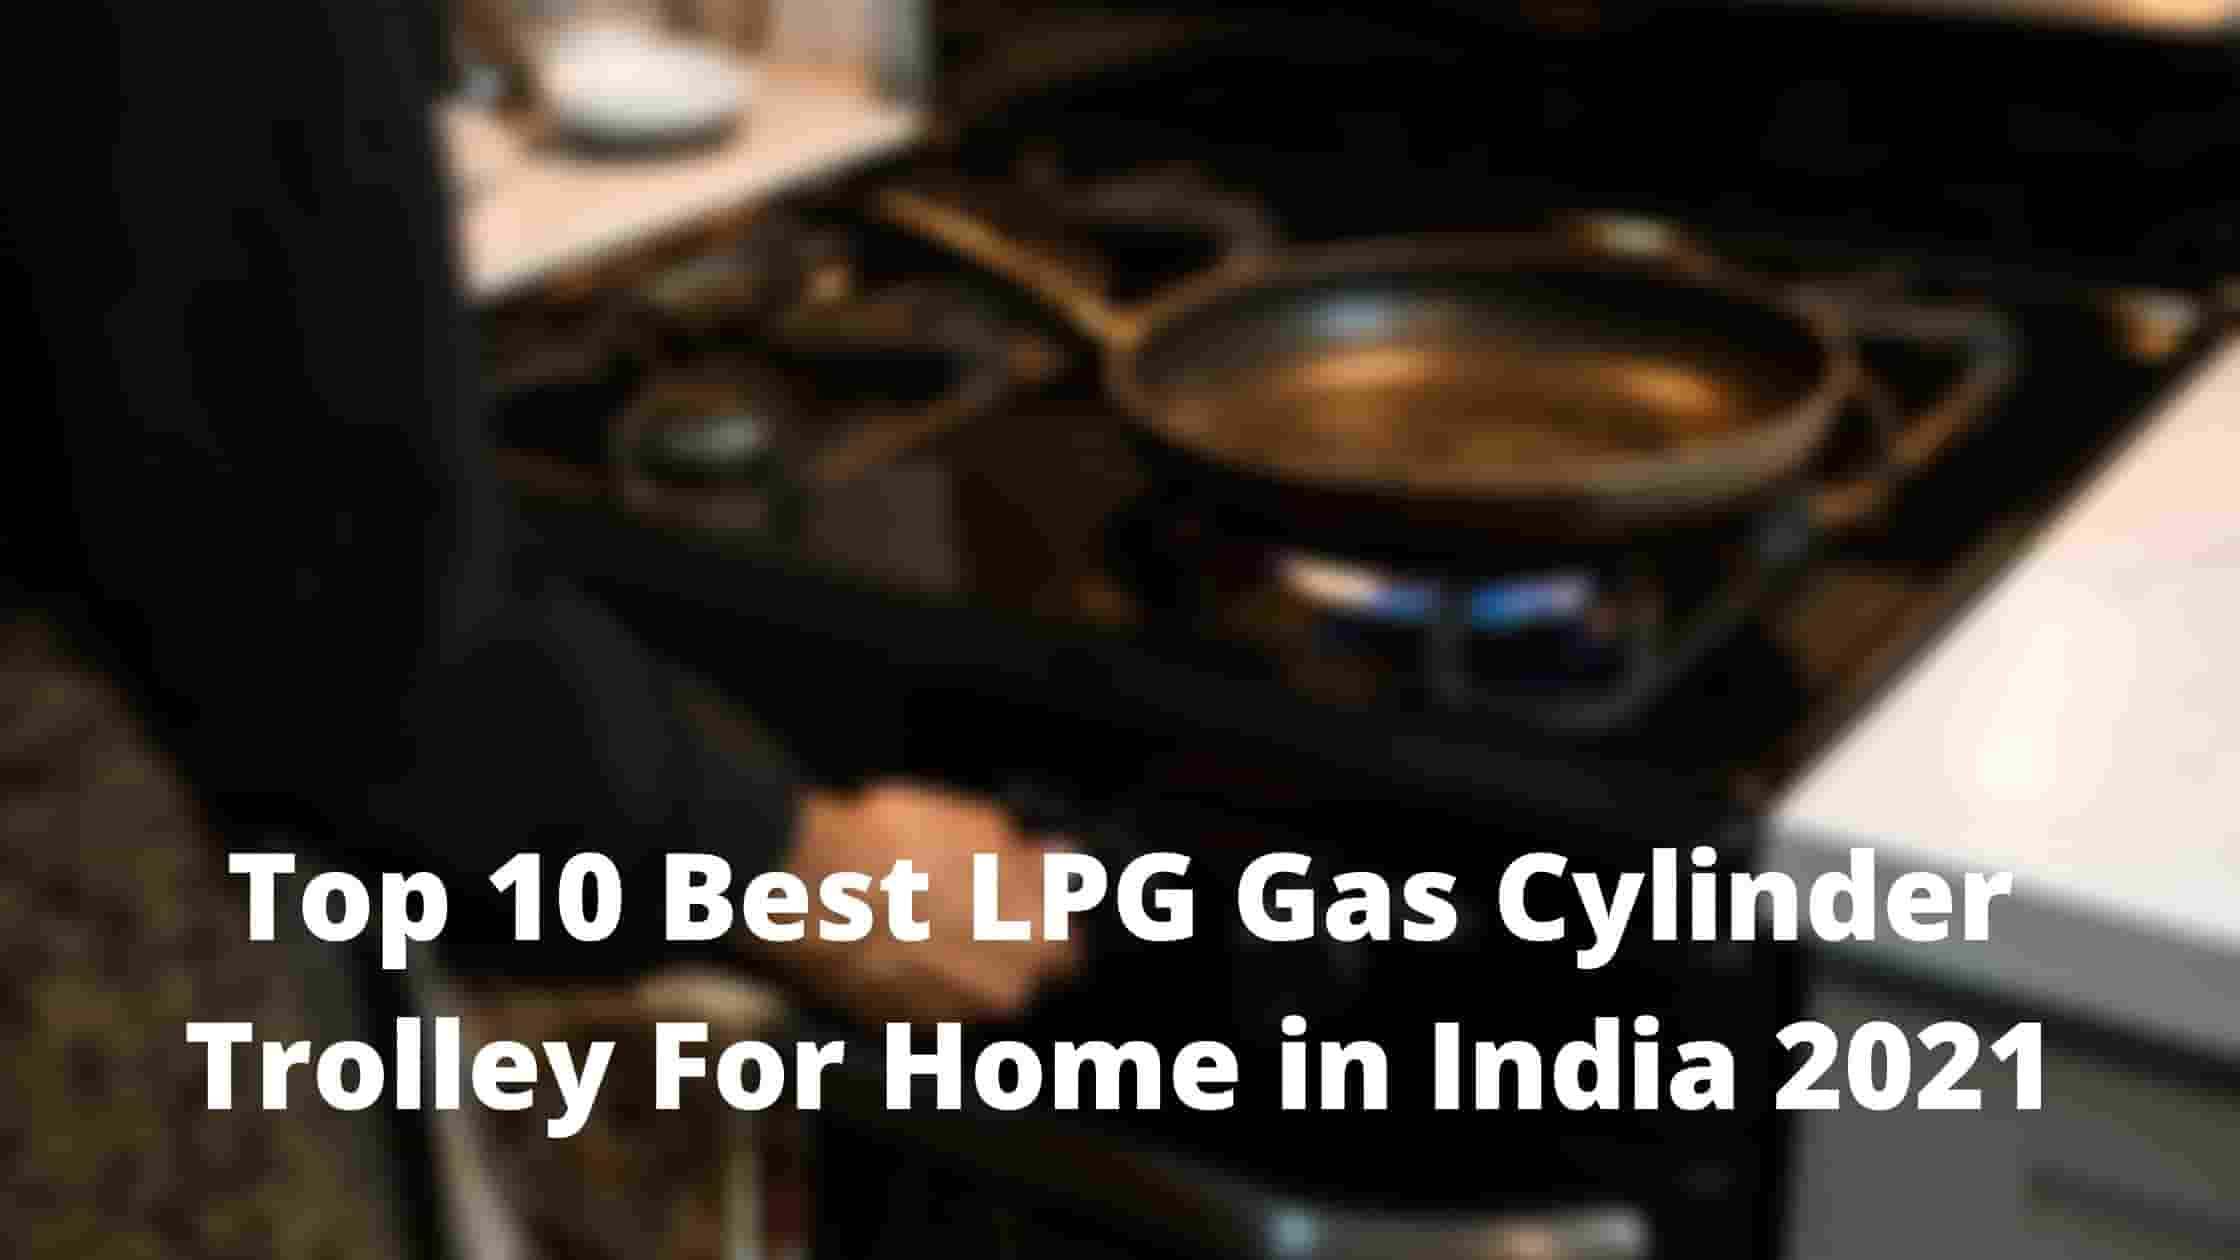 Top 10 Best LPG Gas Cylinder Trolley For Home in India 2021